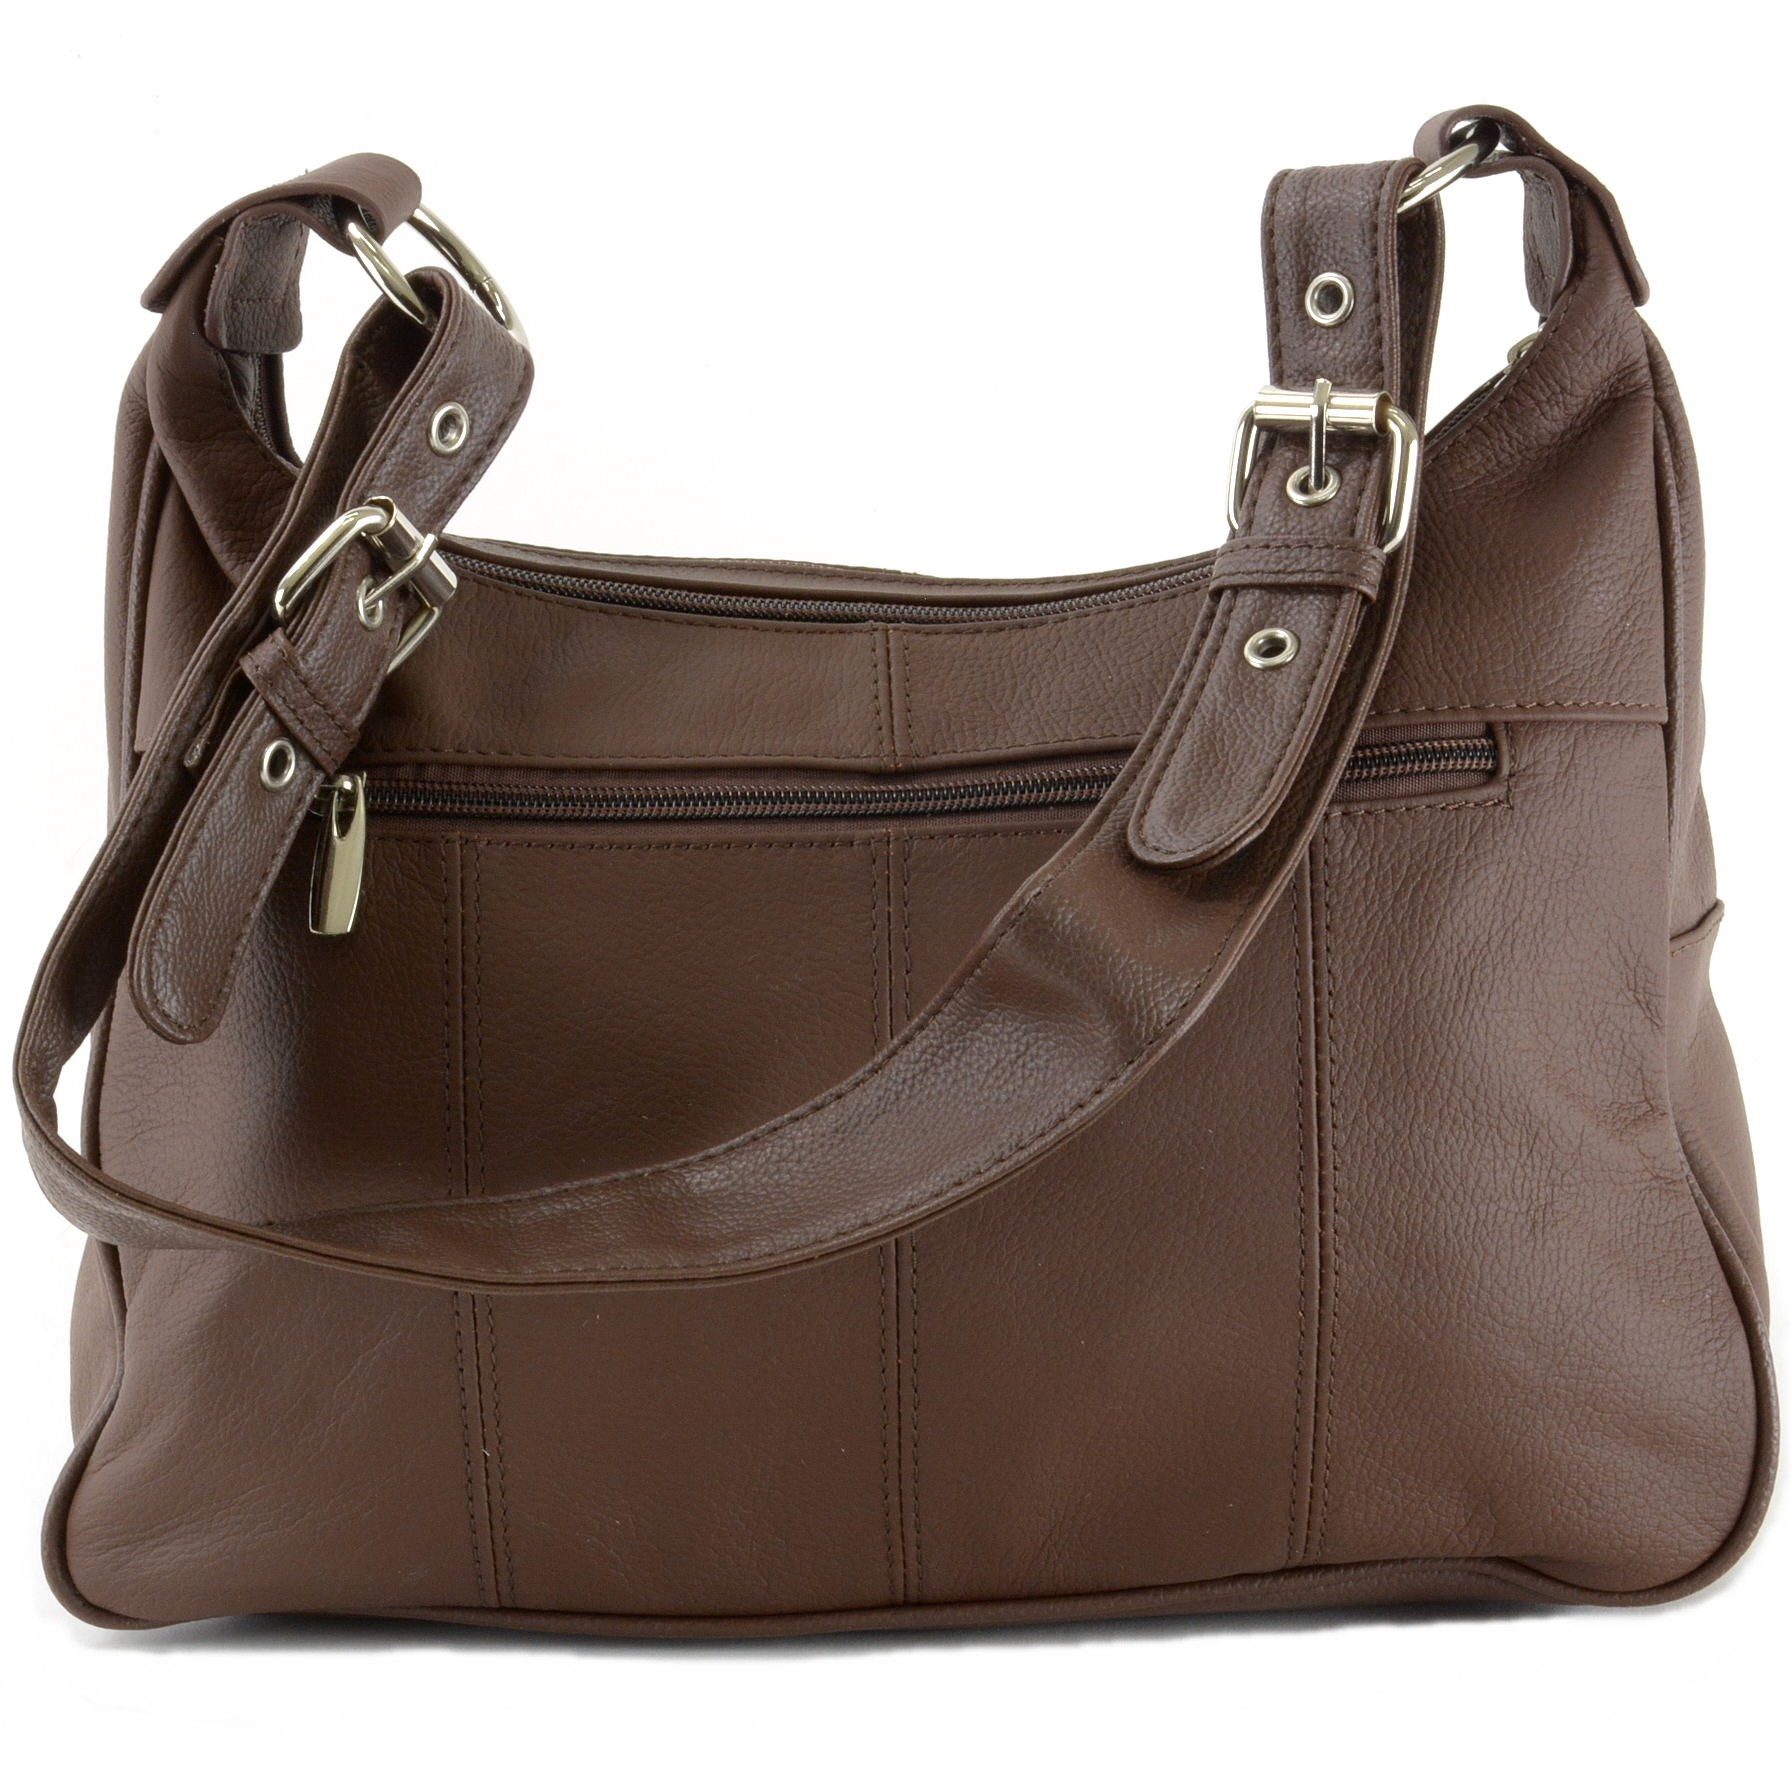 Shop Women's Shoulder Bags Now At nichapie.ml And Enjoy Free Shipping & Returns On All Orders.